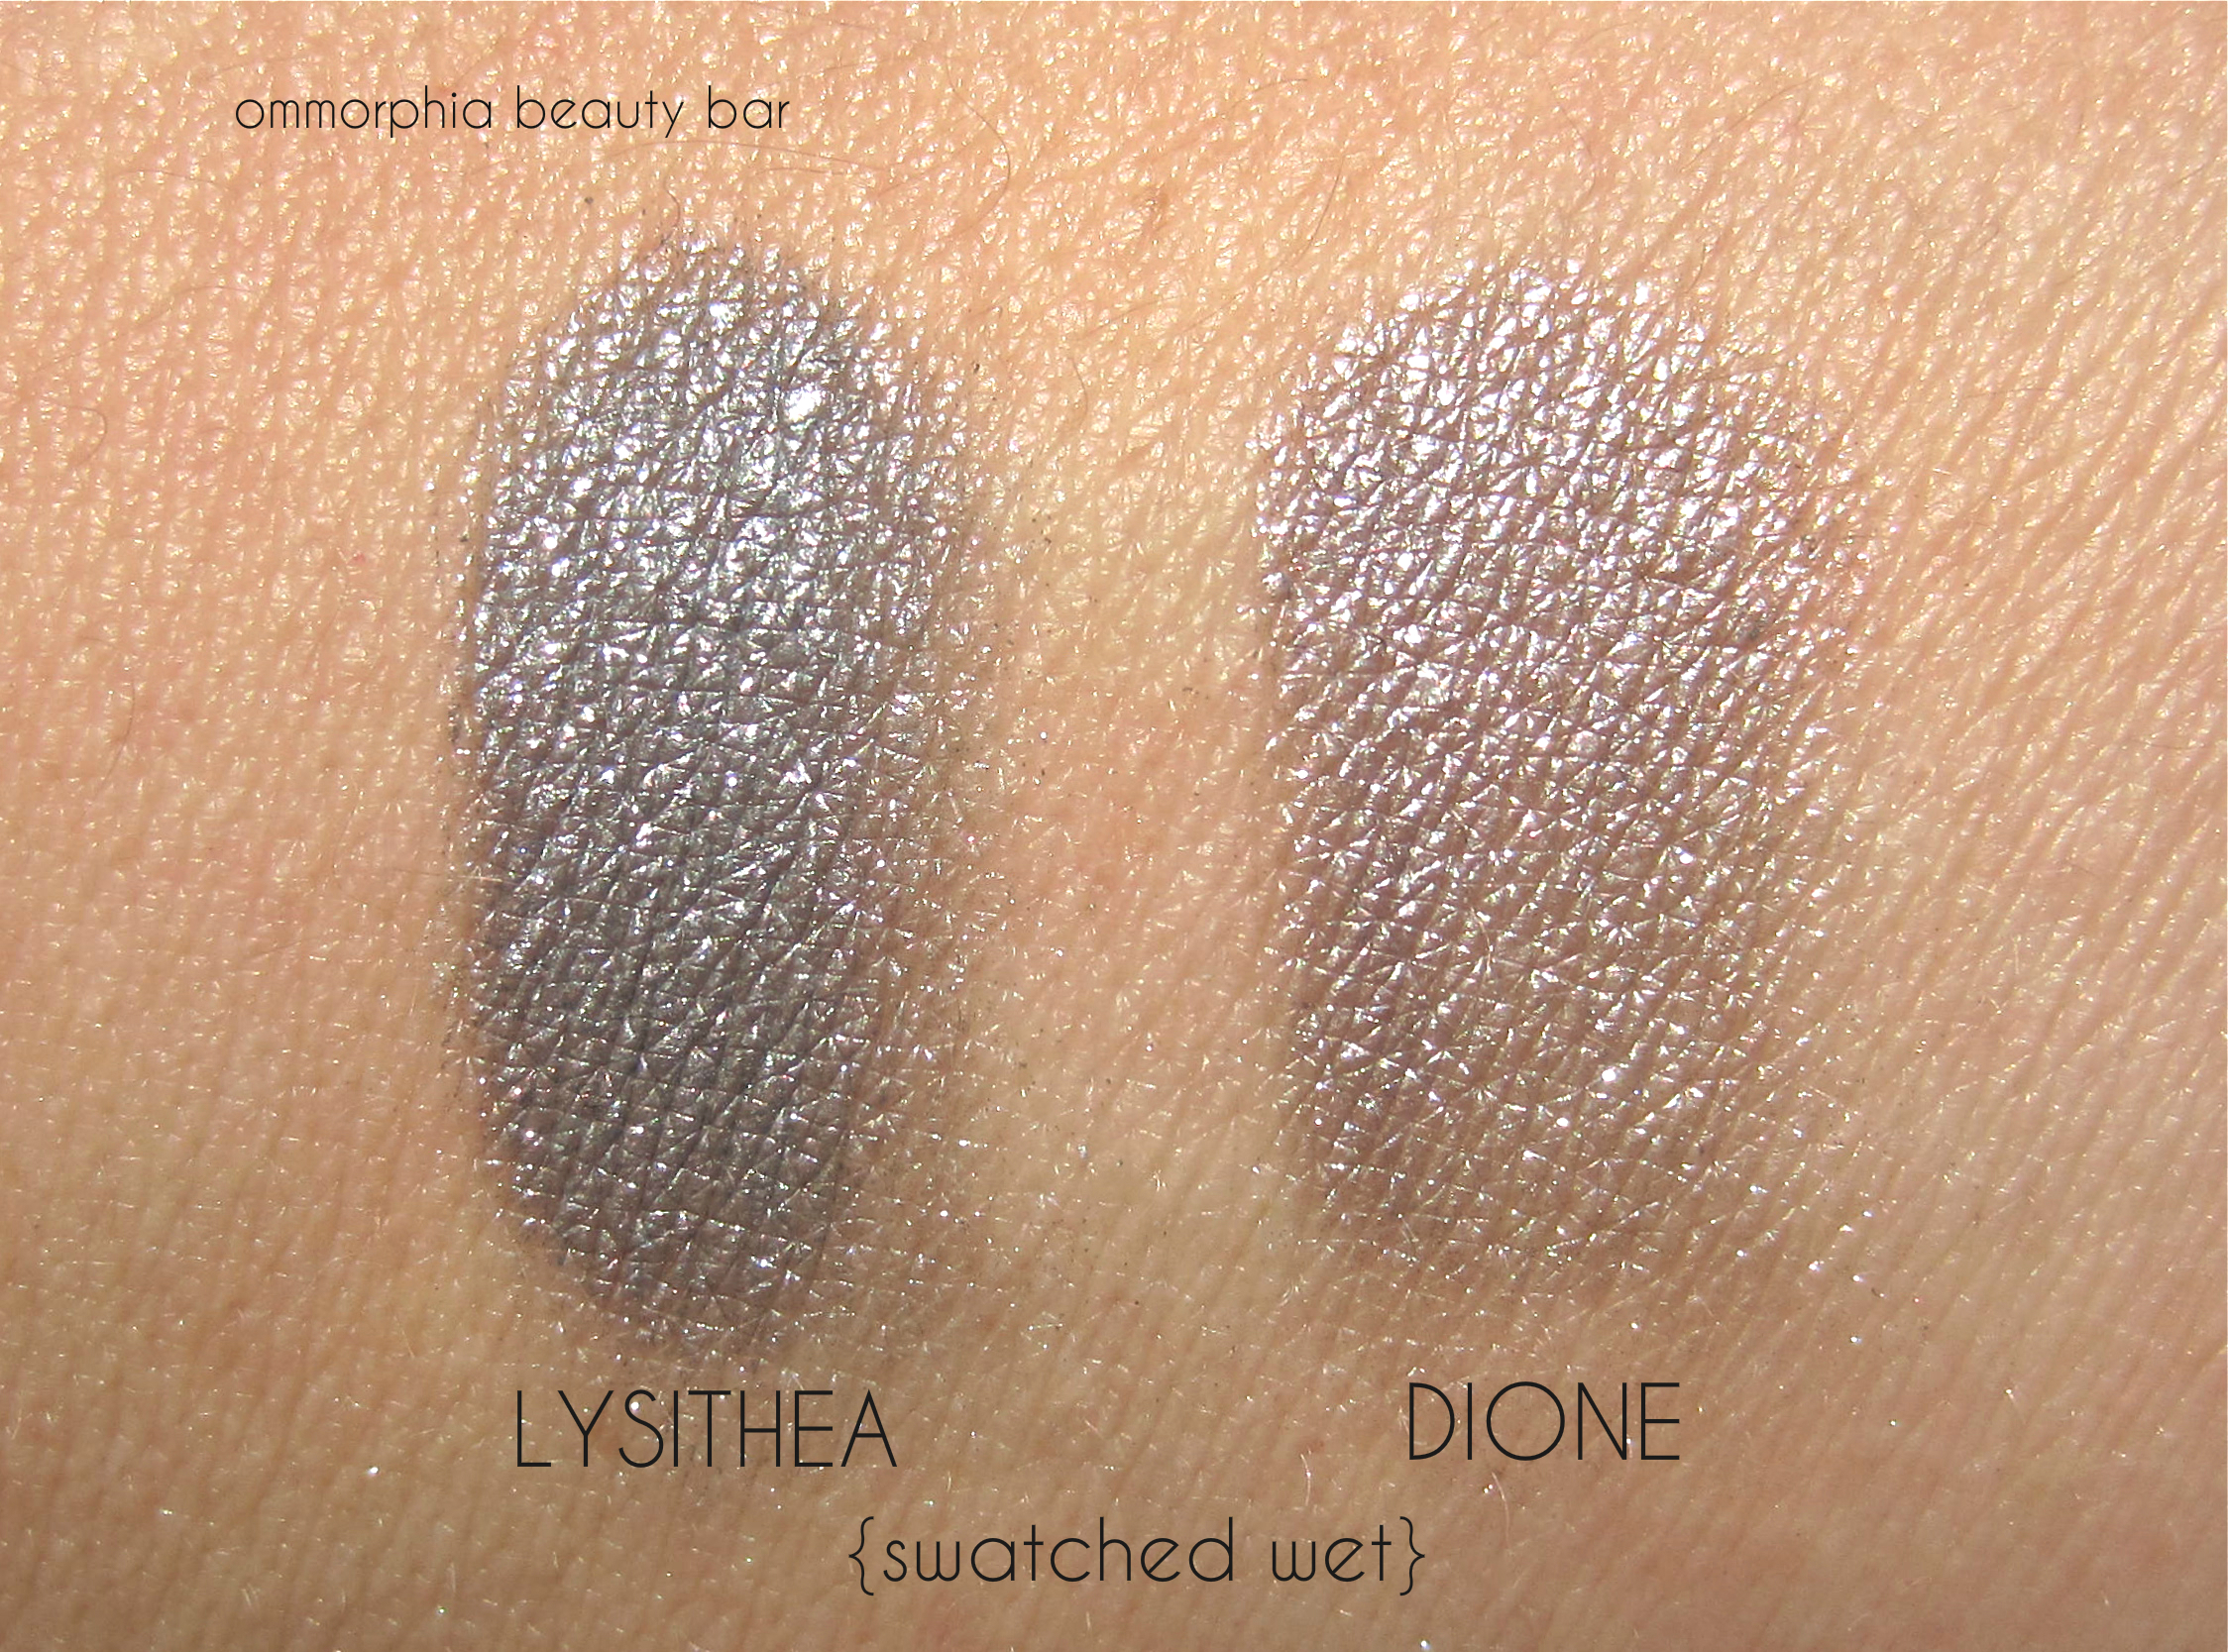 Nars Dual Intensity Eyeshadow In Lysithea & Dione With #49 Wet  Bakedeyeshadowinfo How To Apply